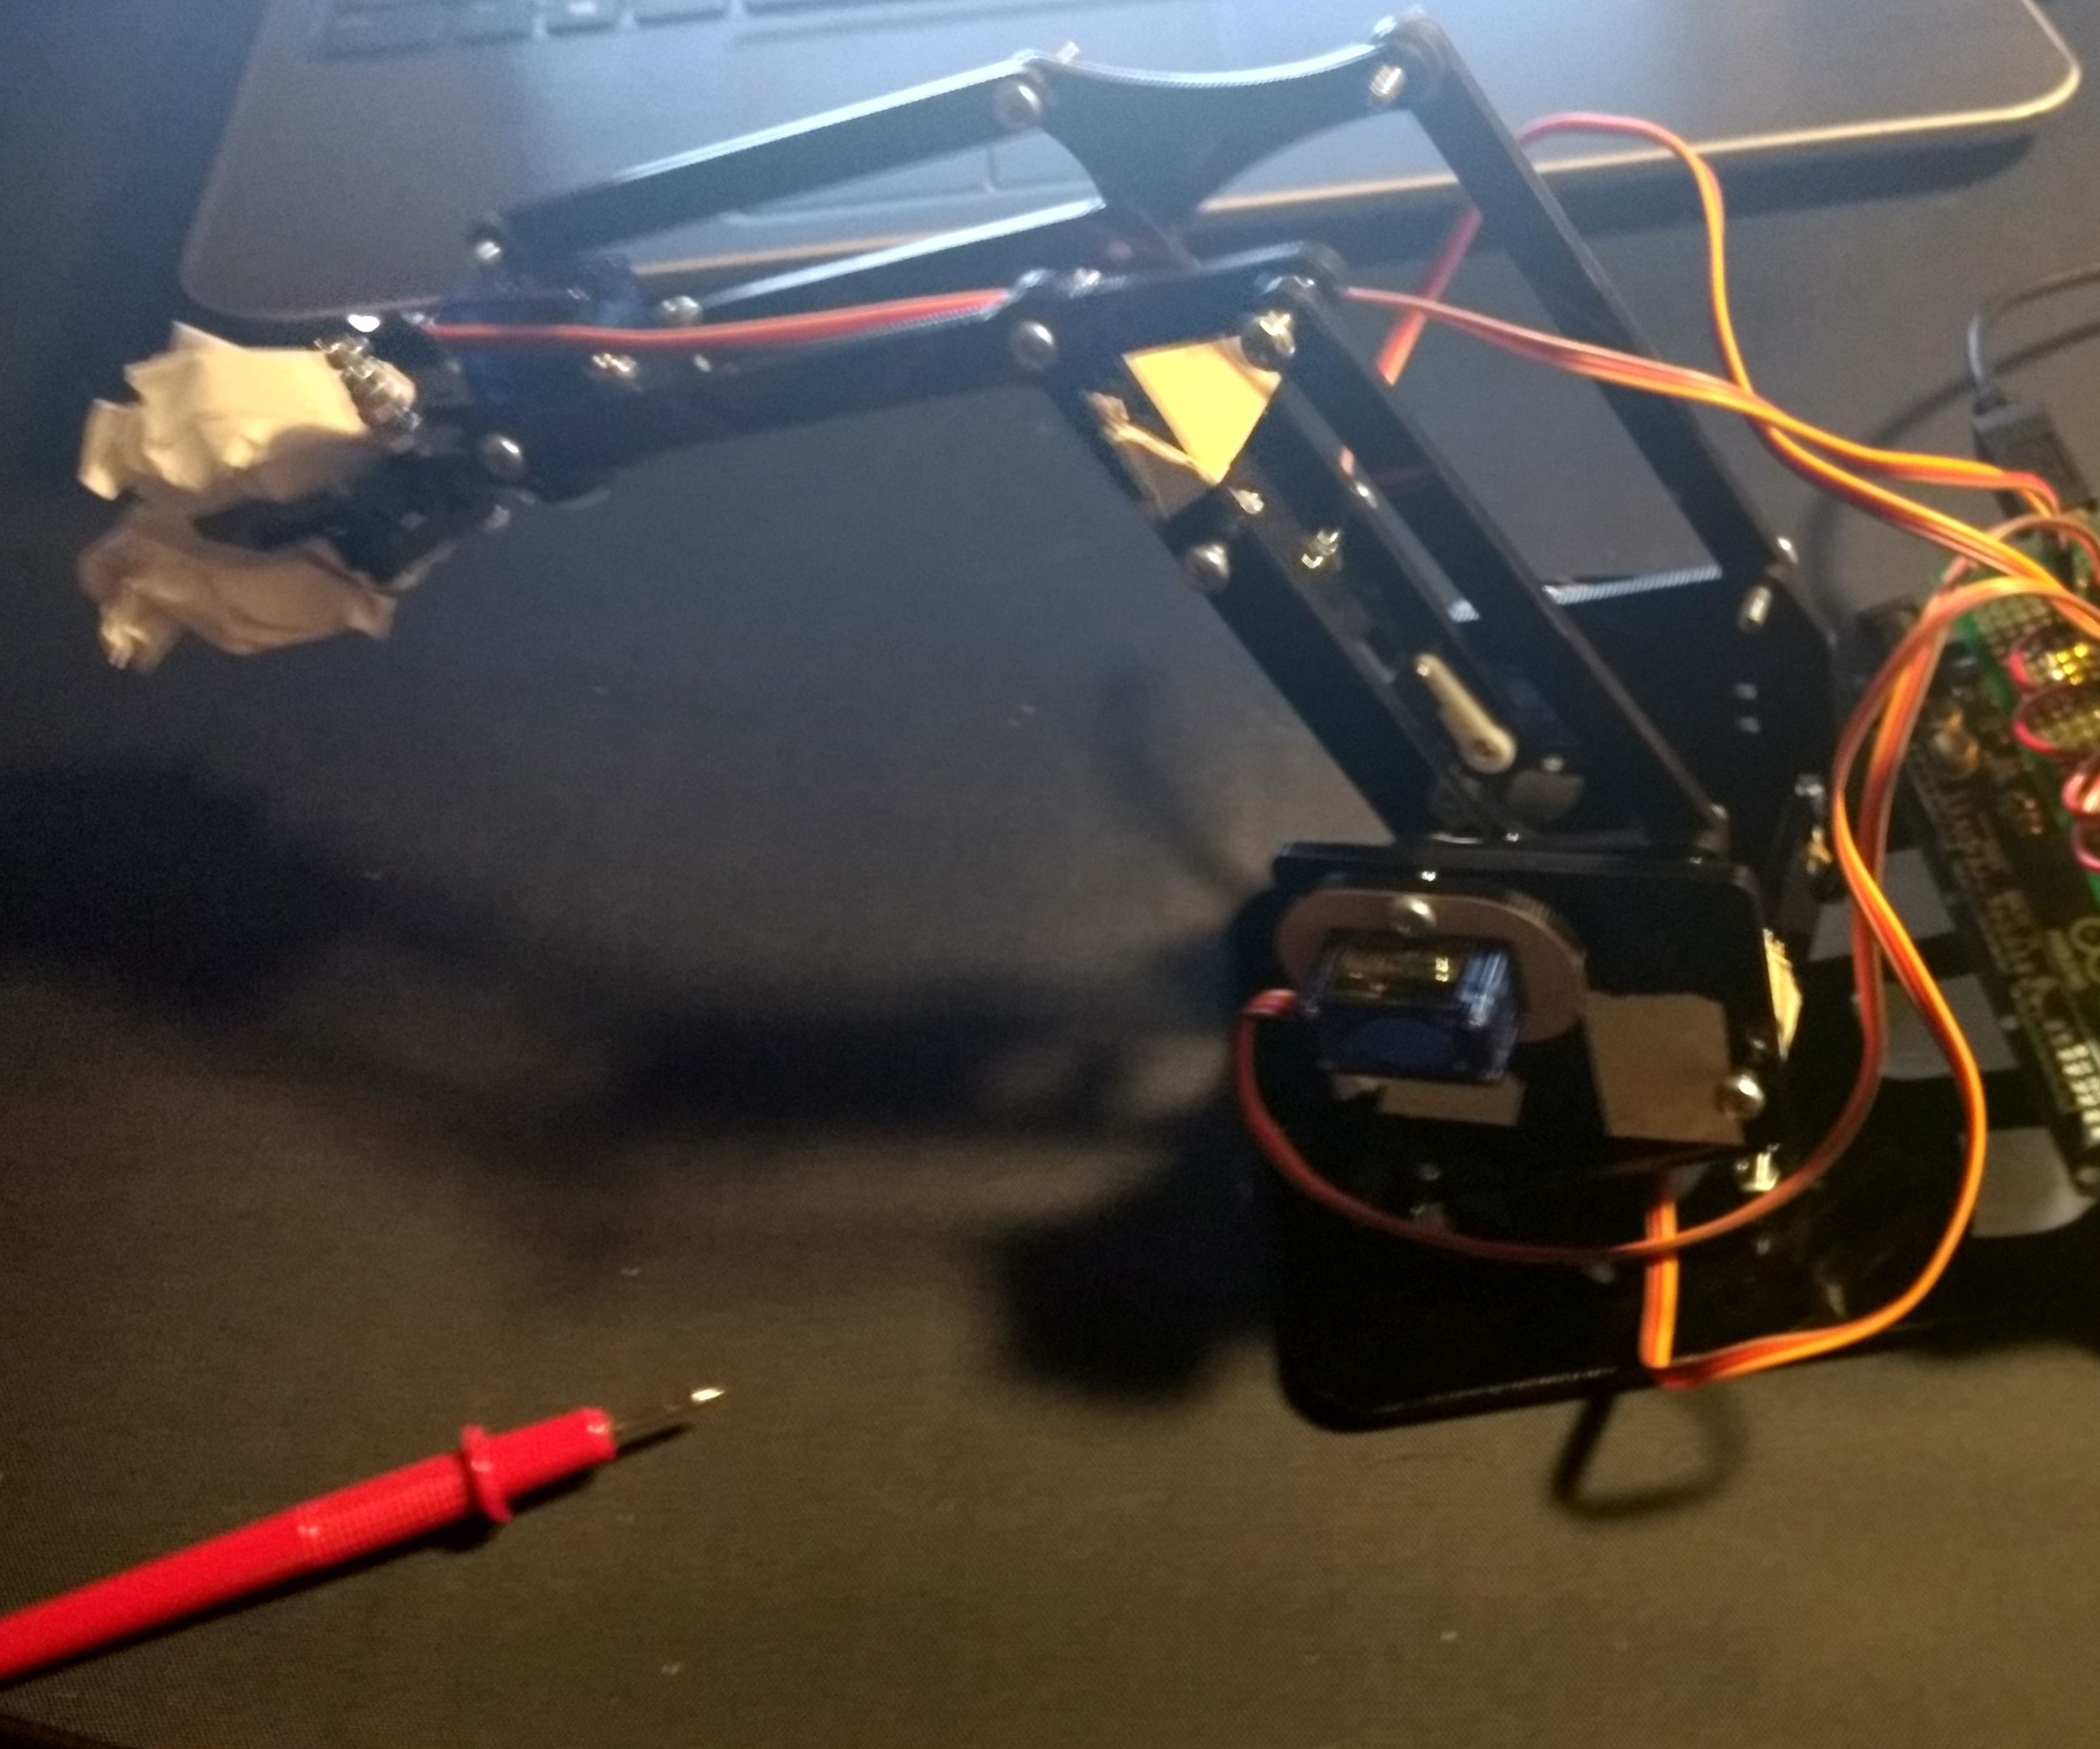 Quirky Crowd Controlled Robotic Arm With Arduino